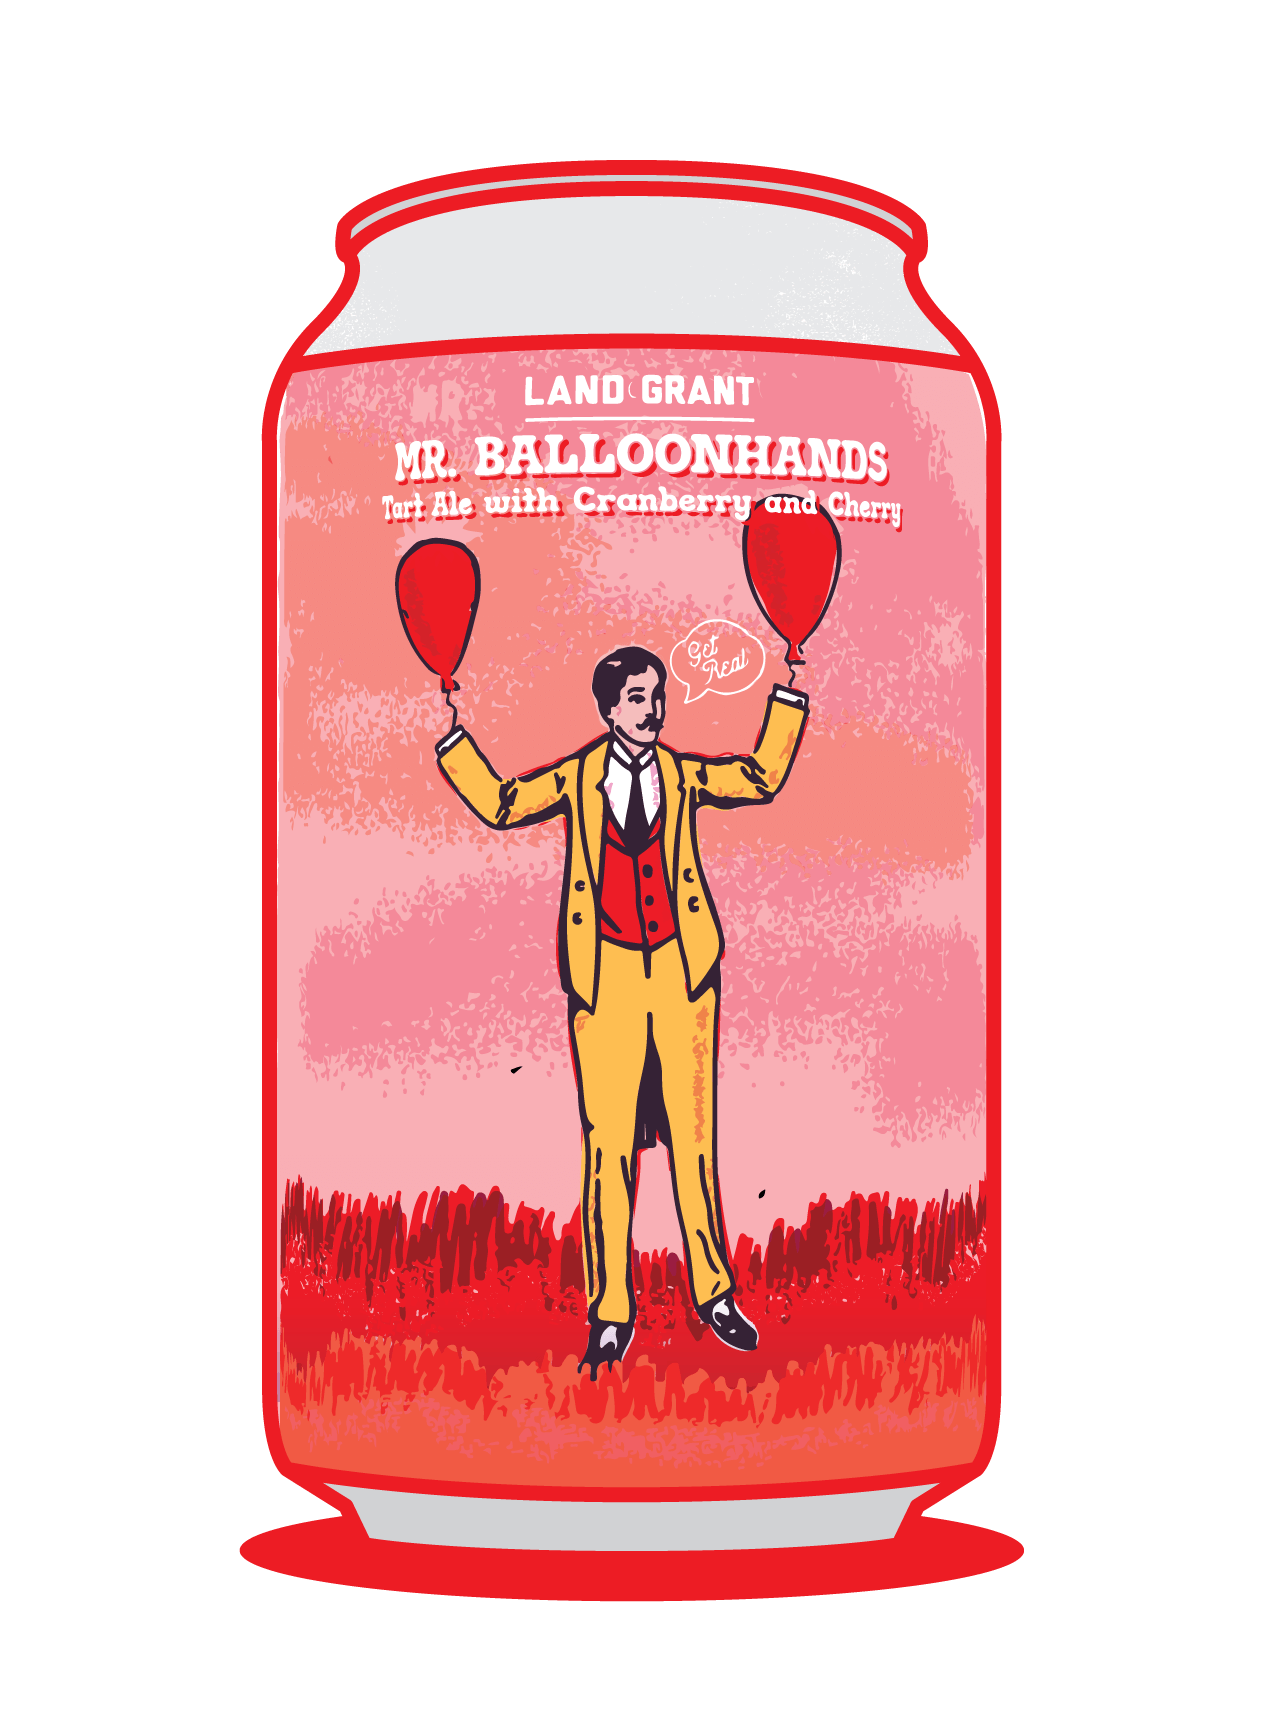 Mr. Balloonhands with Cranberry and Cherry  Image